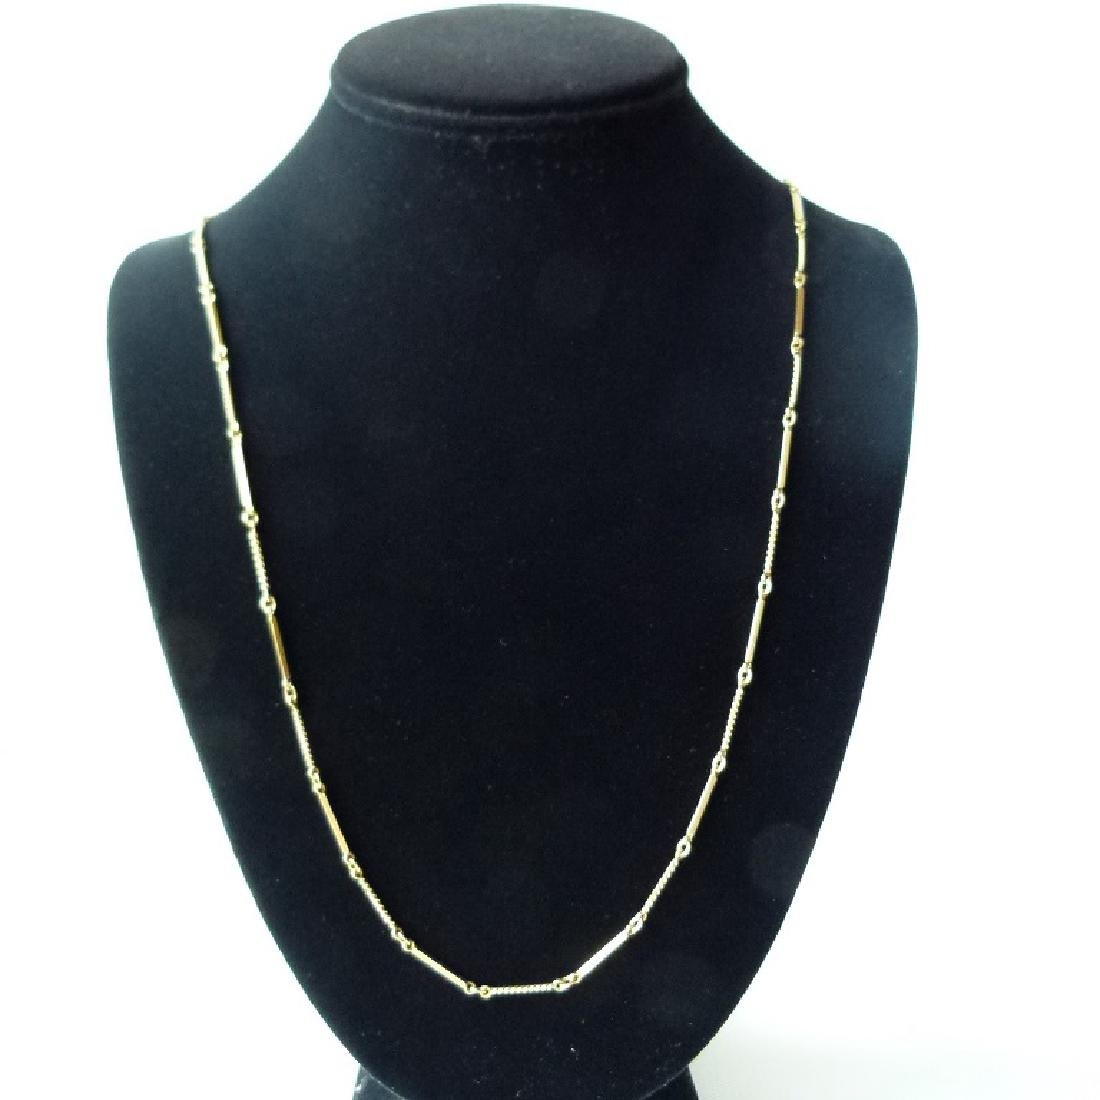 18KT YELLOW GOLD BAR CHAIN NECKLACE